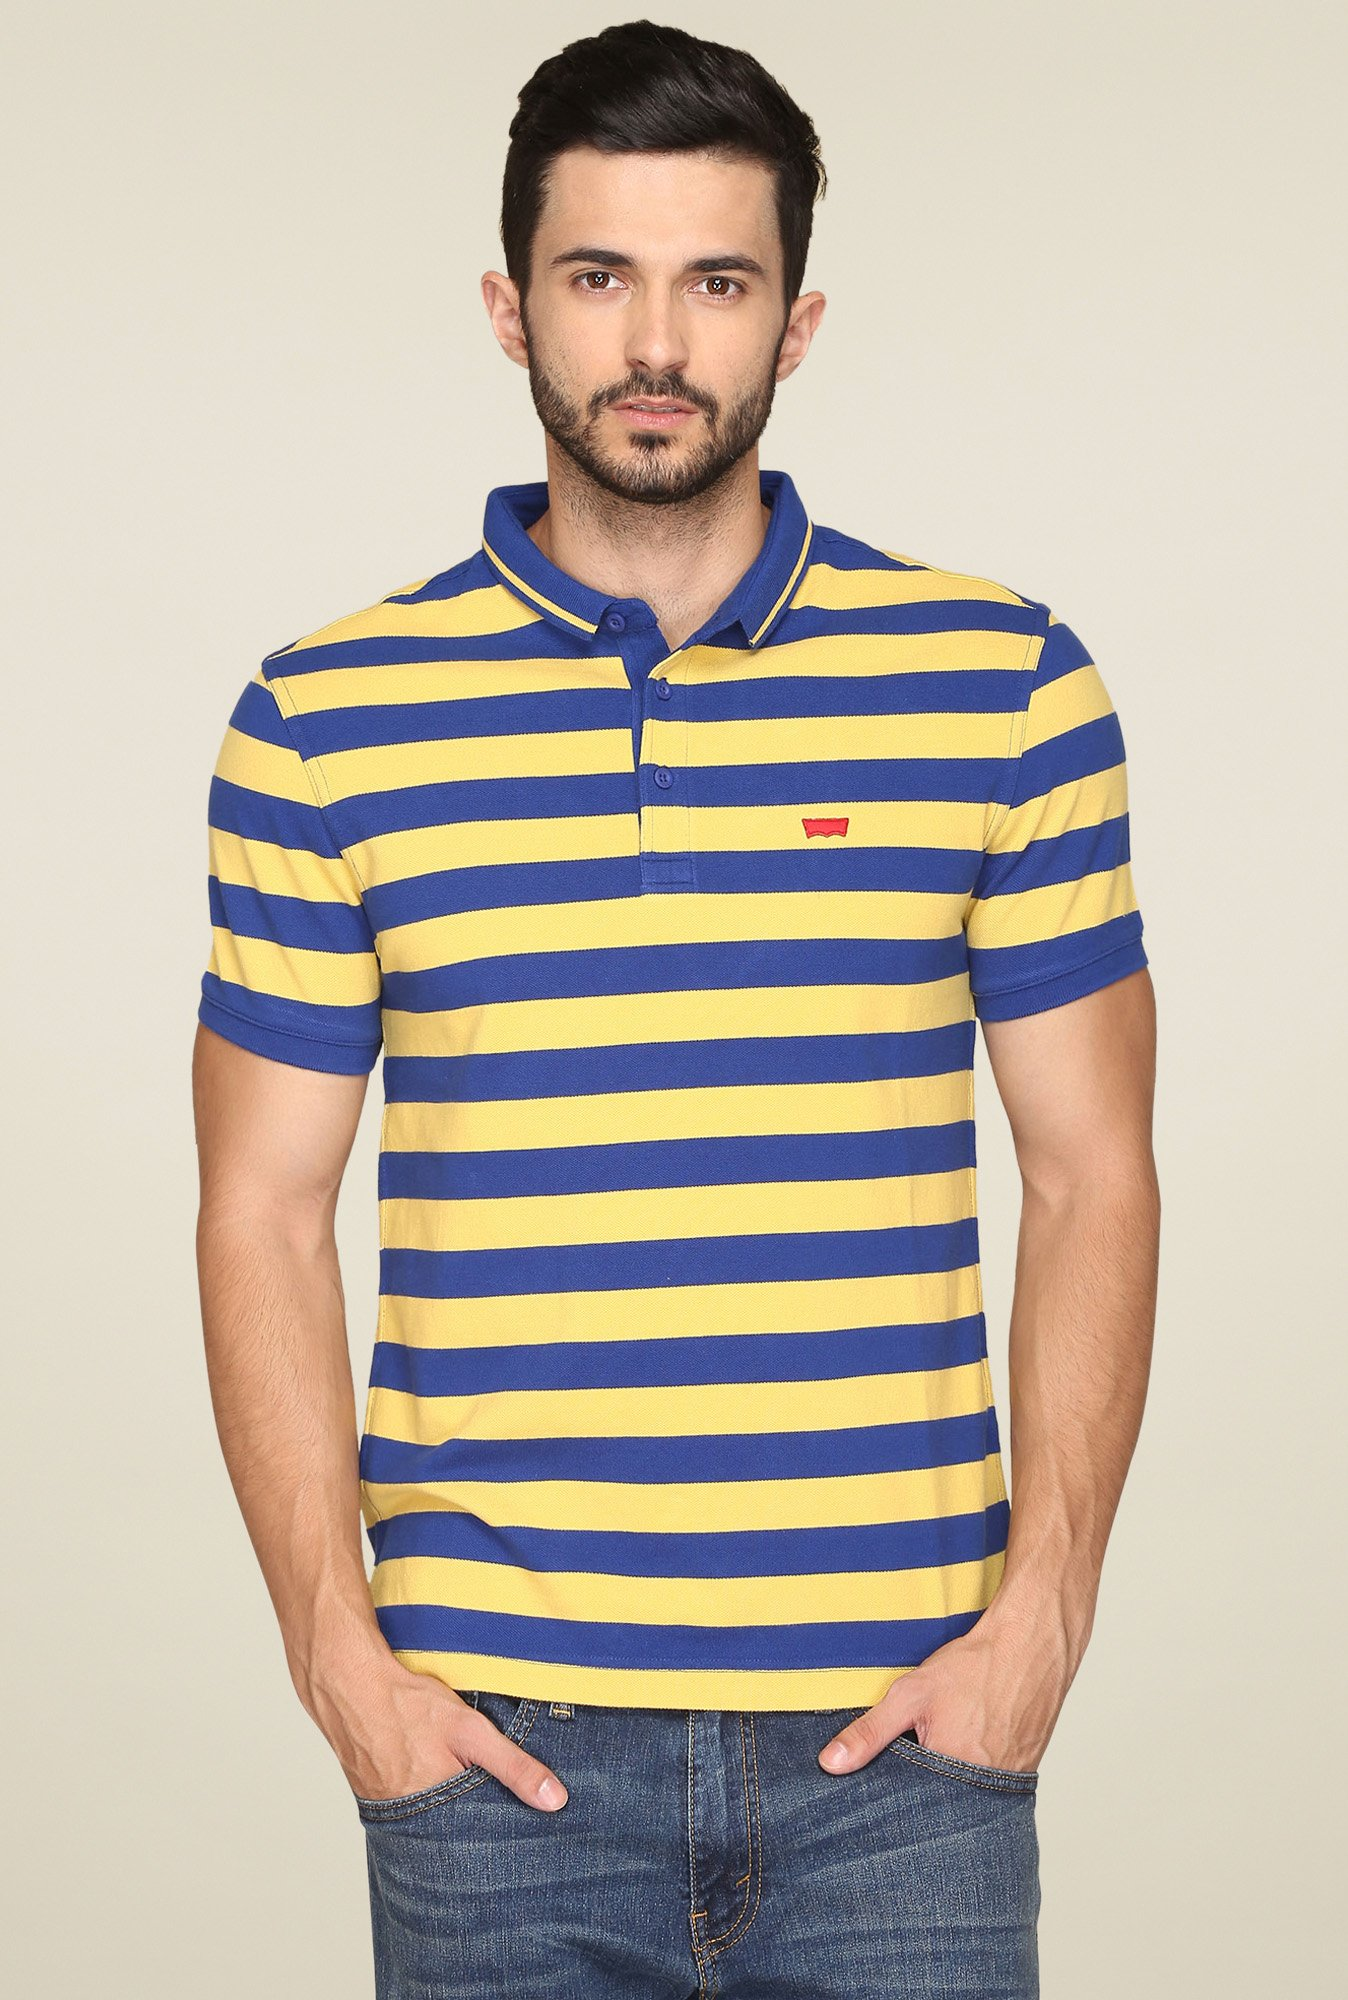 Levi's Yellow & Blue Regular Fit Polo T-Shirt